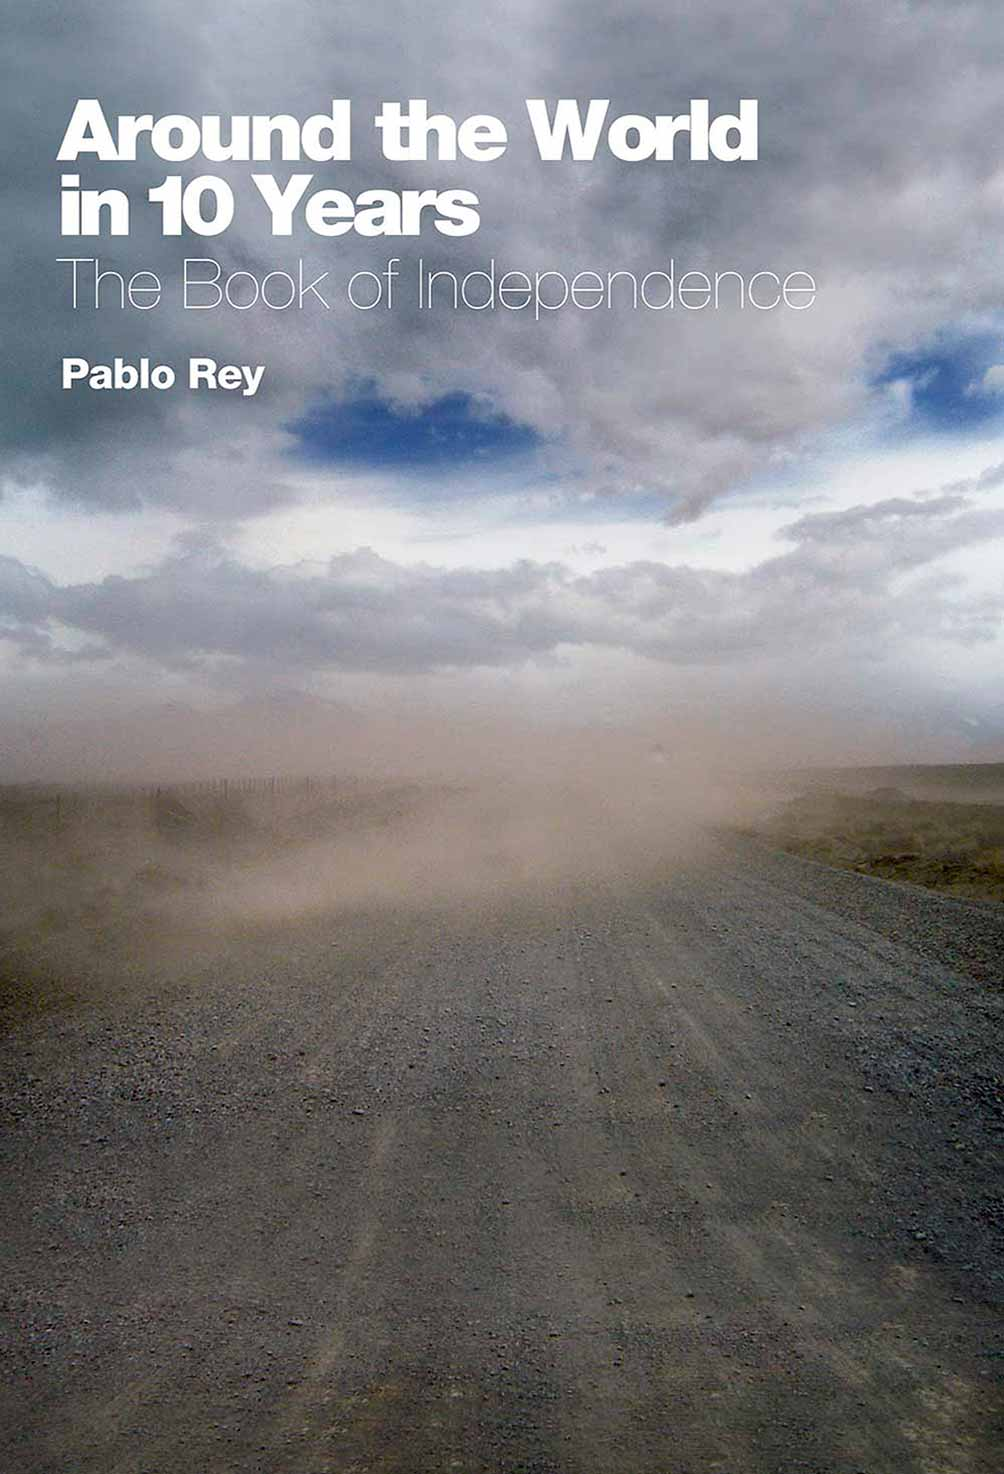 The Book of Independence